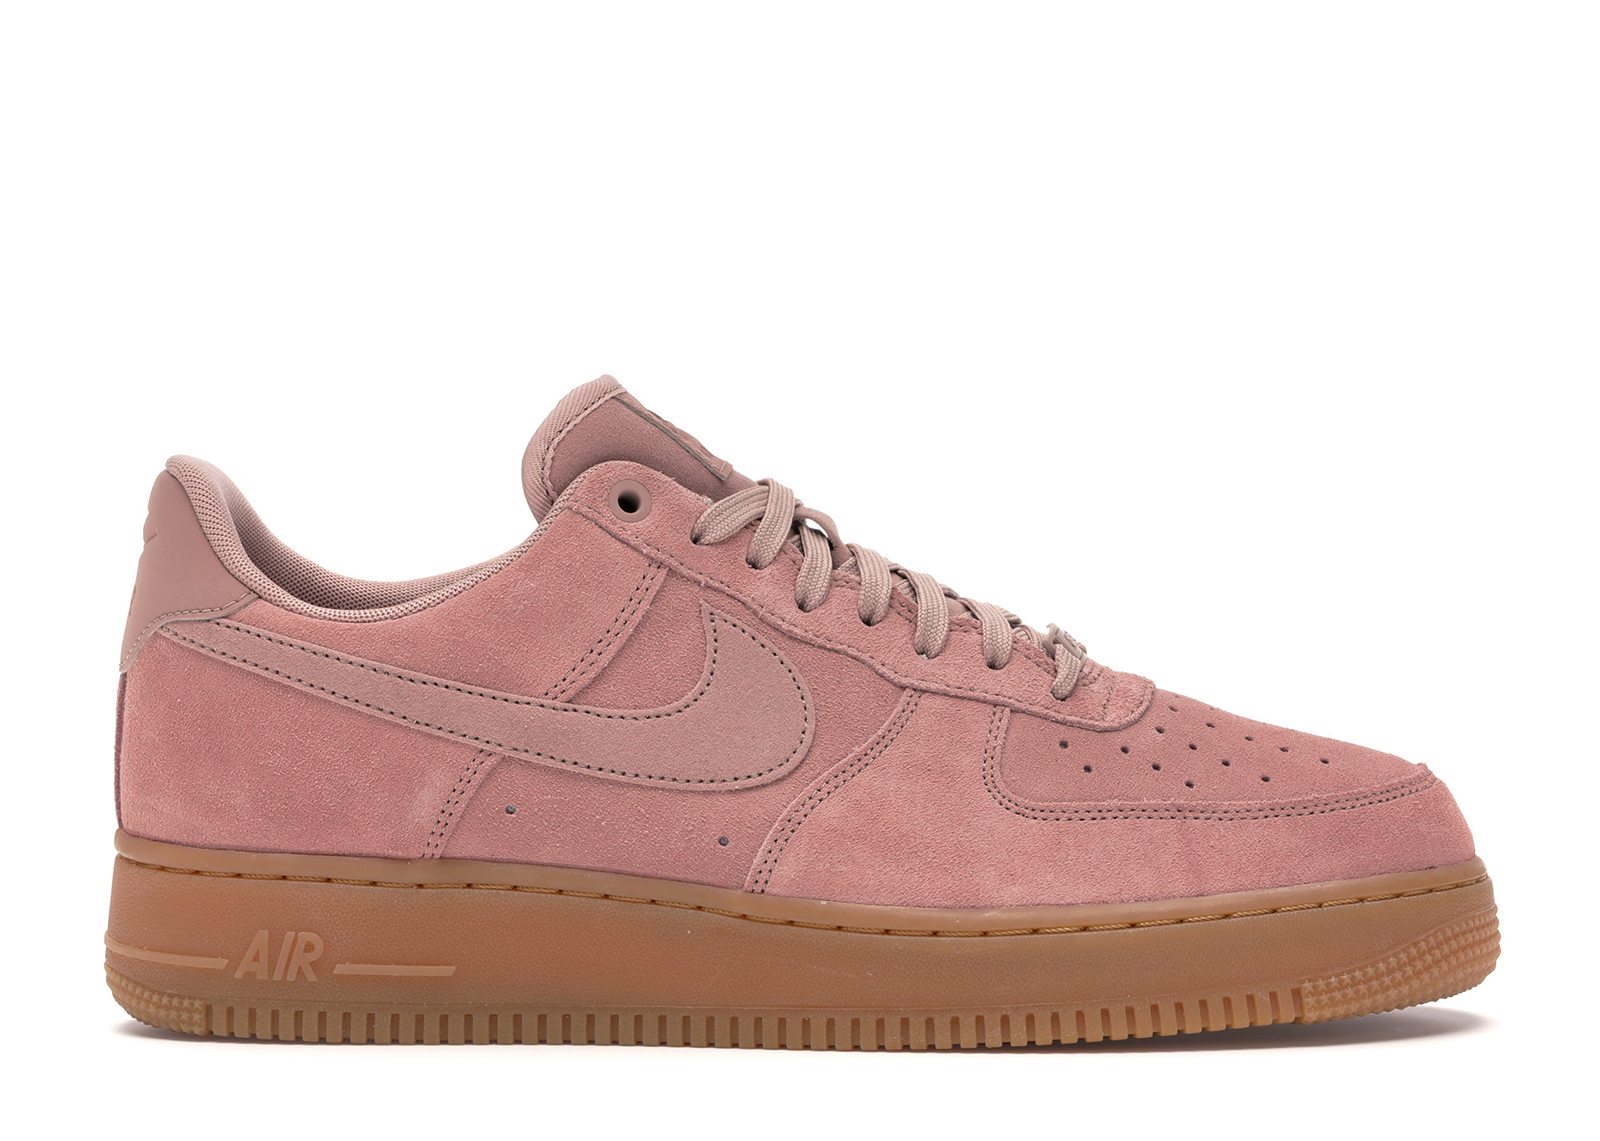 Nike Air Force 1 Low Particle Pink Gum